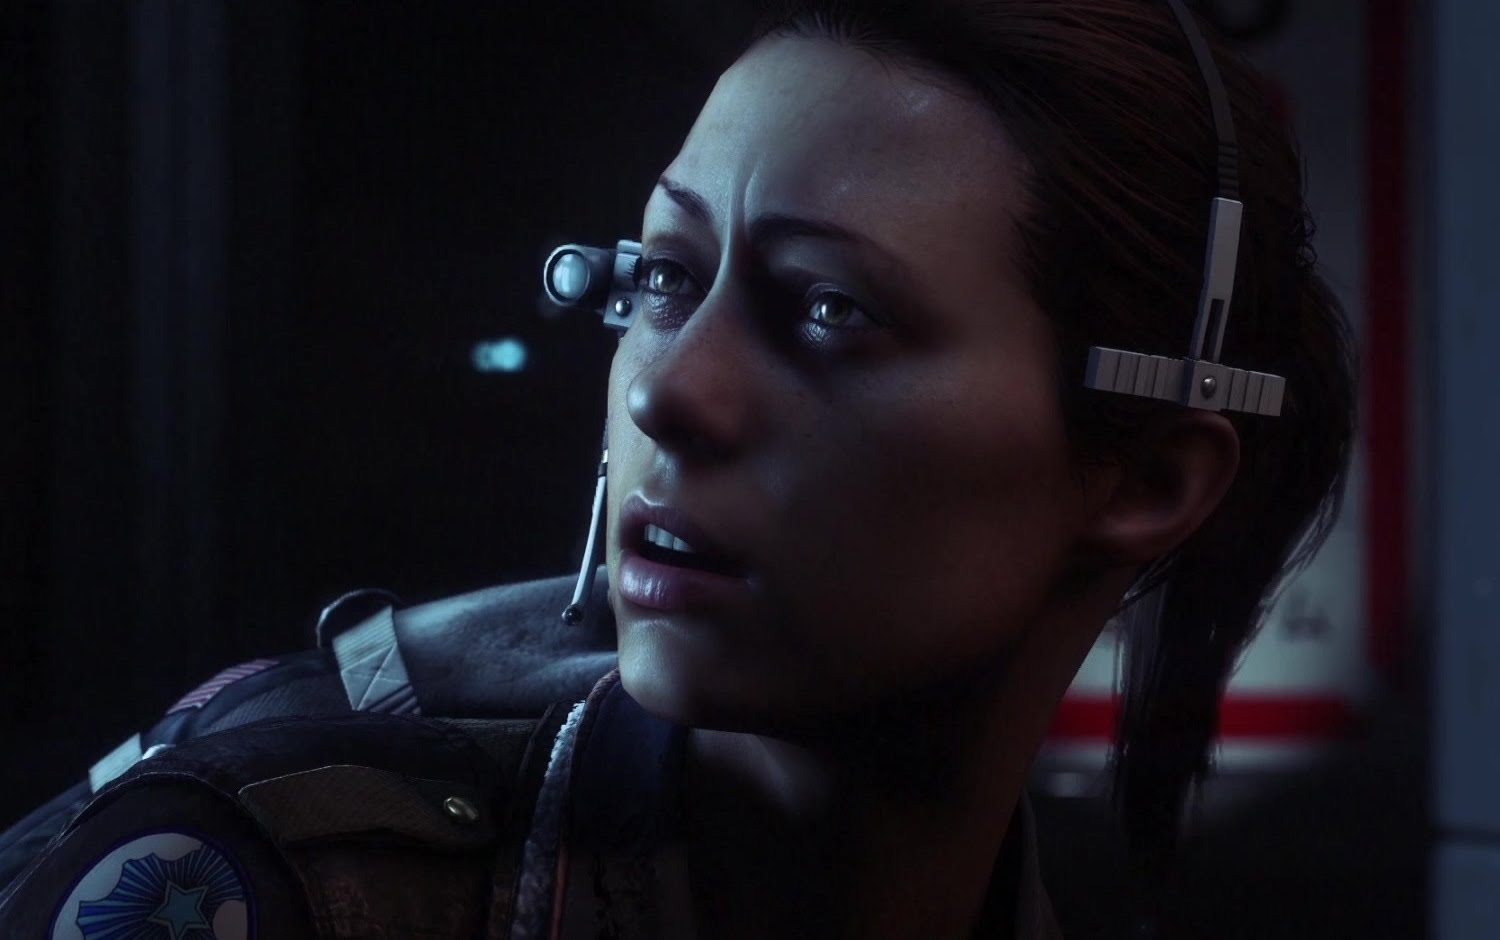 Gamescom 2014: Alien Isolation Extended Gameplay (PC-Fassung)